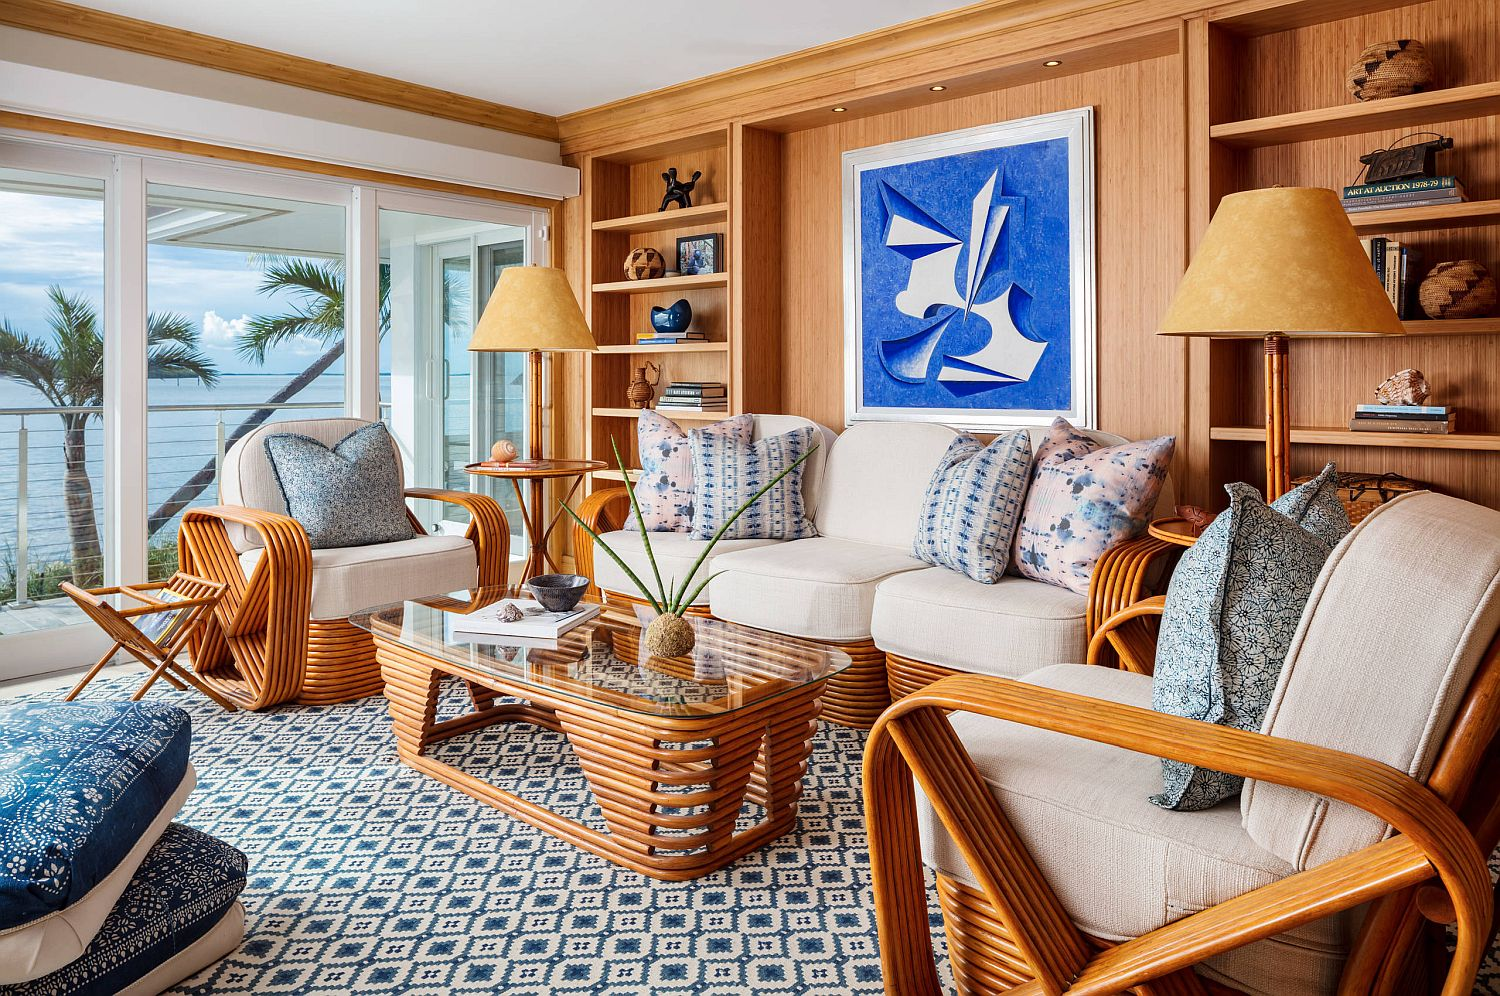 Beach style coupled with tropical zest in the woodsy and compact living room